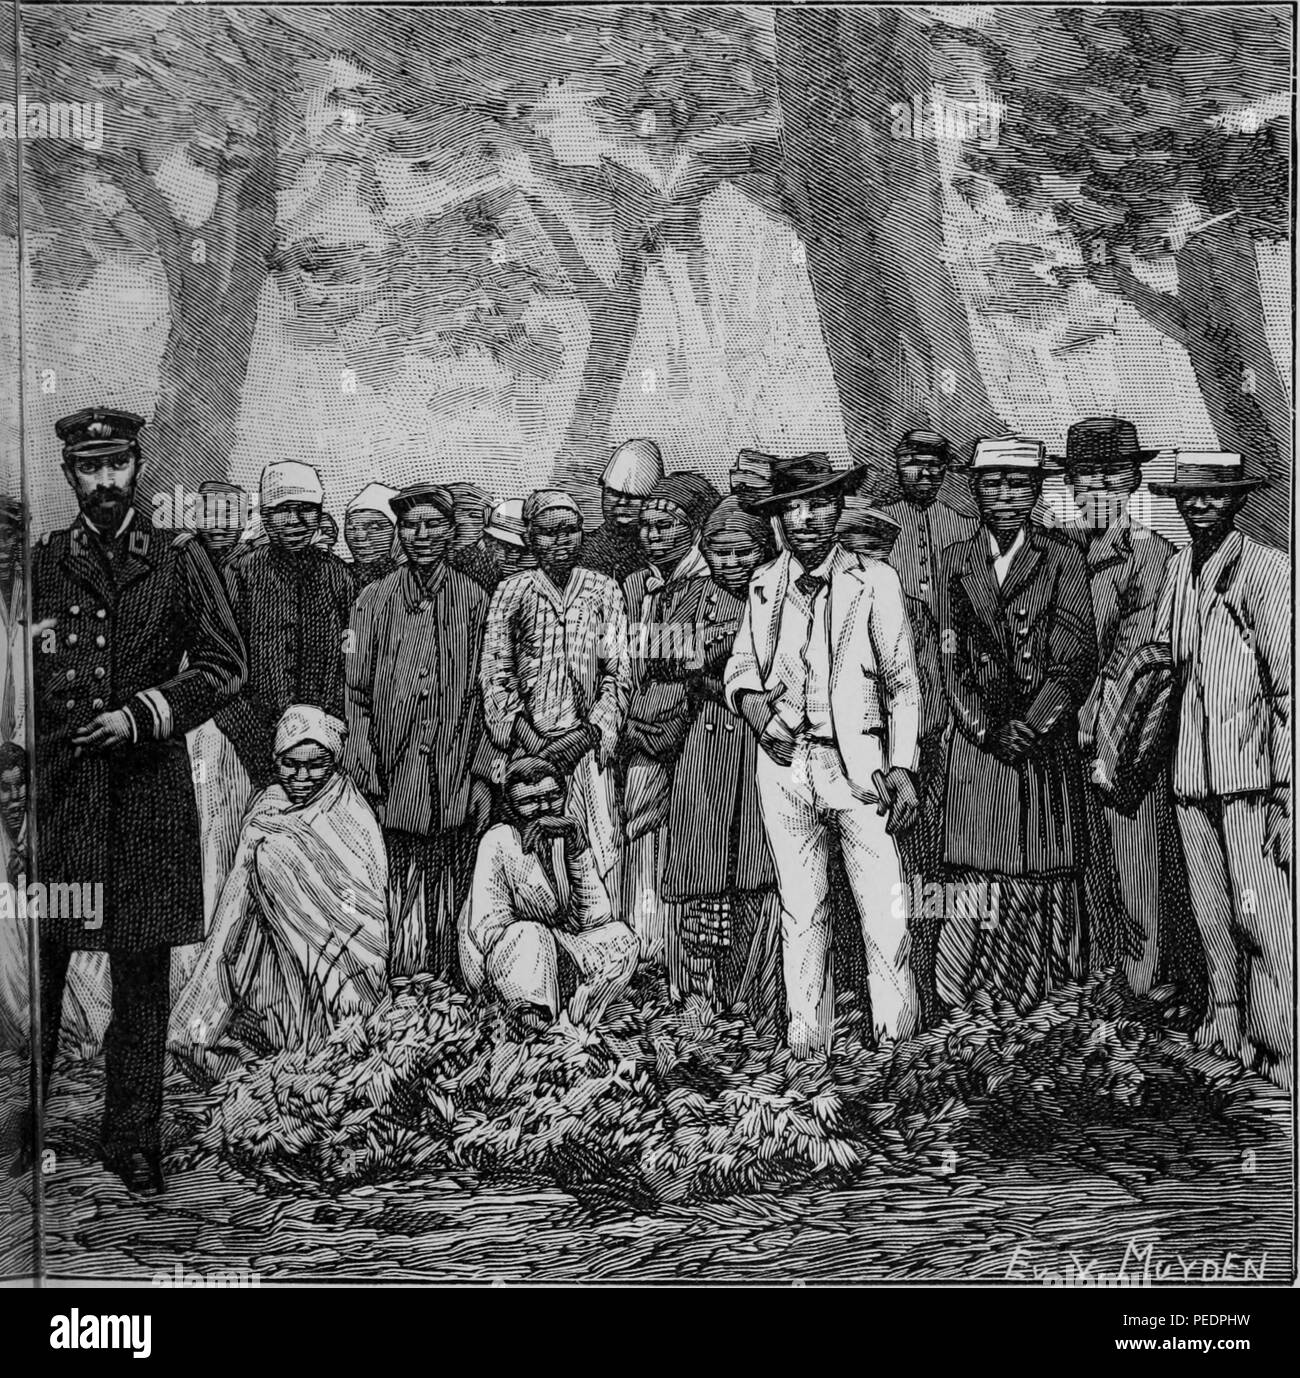 Right half of a larger black and white print illustrating members of an expedition travelling to the Cape of Good Hope, a peninsula on the Atlantic side of South Africa, with a European captain in the foreground, and a large group of both African men and women standing in a line behind him, with several more Africans seated at midground, from the volume 'De Angola a contra-costa, descripcao de uma viagem atravez do continente africano', part of the infamous Triangle Trade, 1886. Courtesy Internet Archive. () - Stock Image